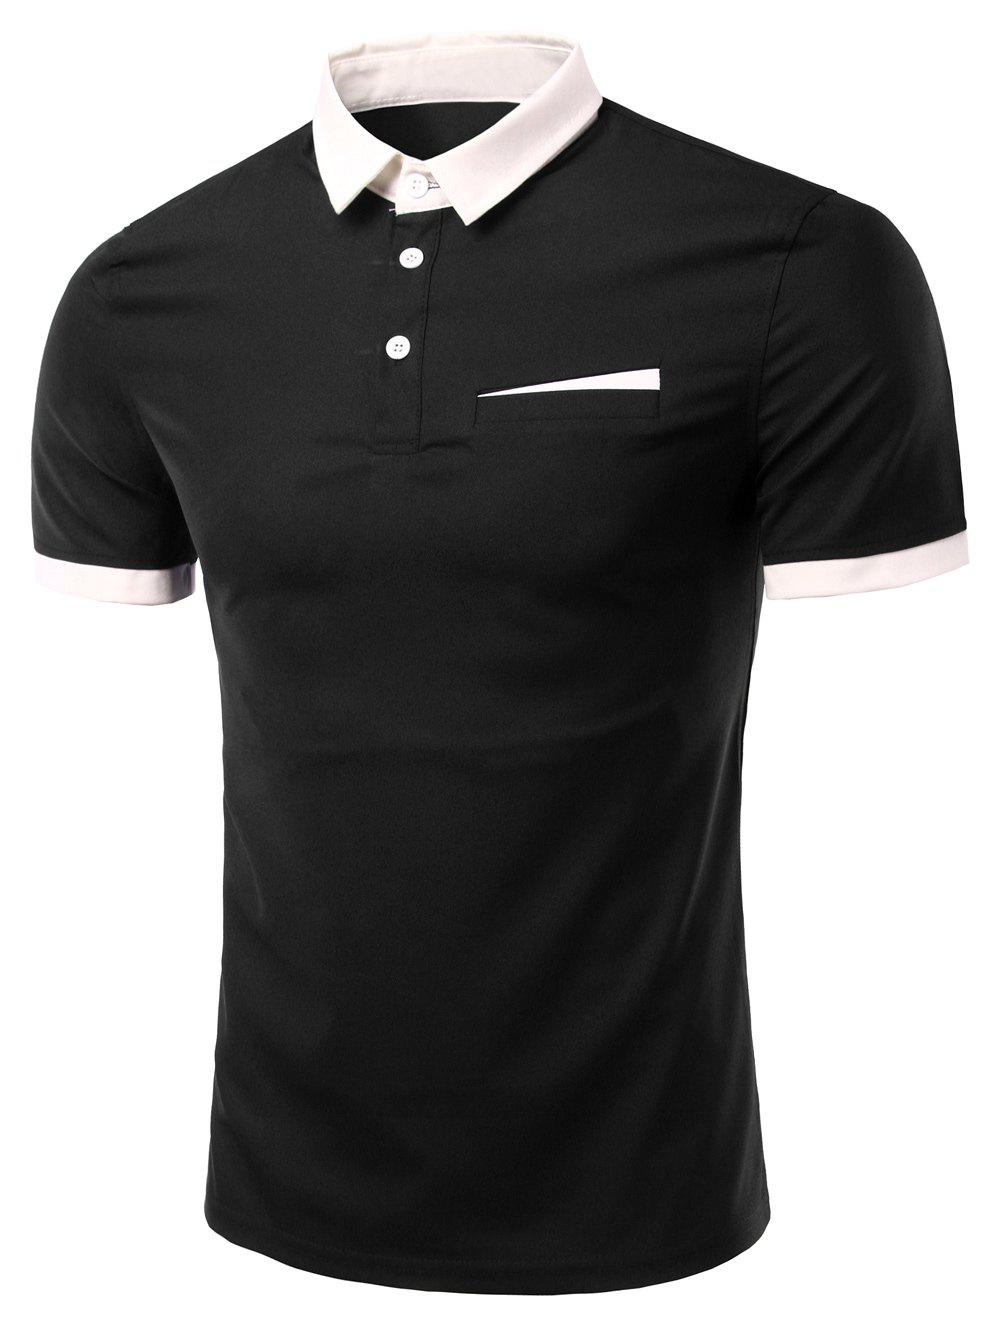 Men's Fashion Turn-down Collar Solid Color Short Sleeves Polo T-Shirt